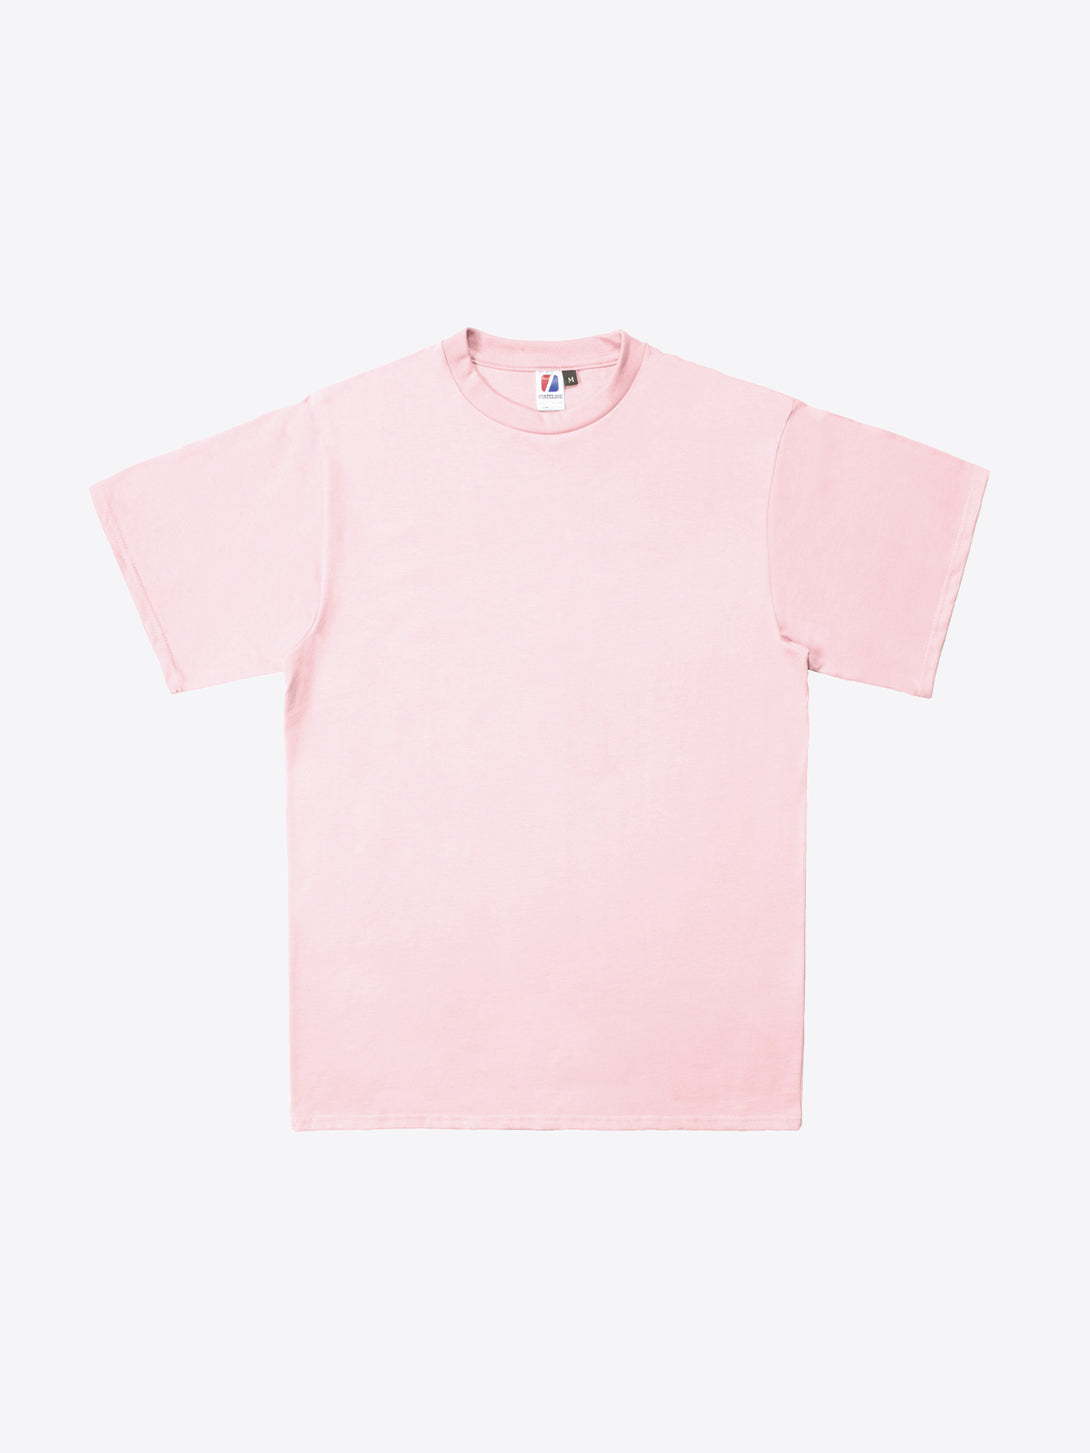 Jersey S/S Tee - Pink